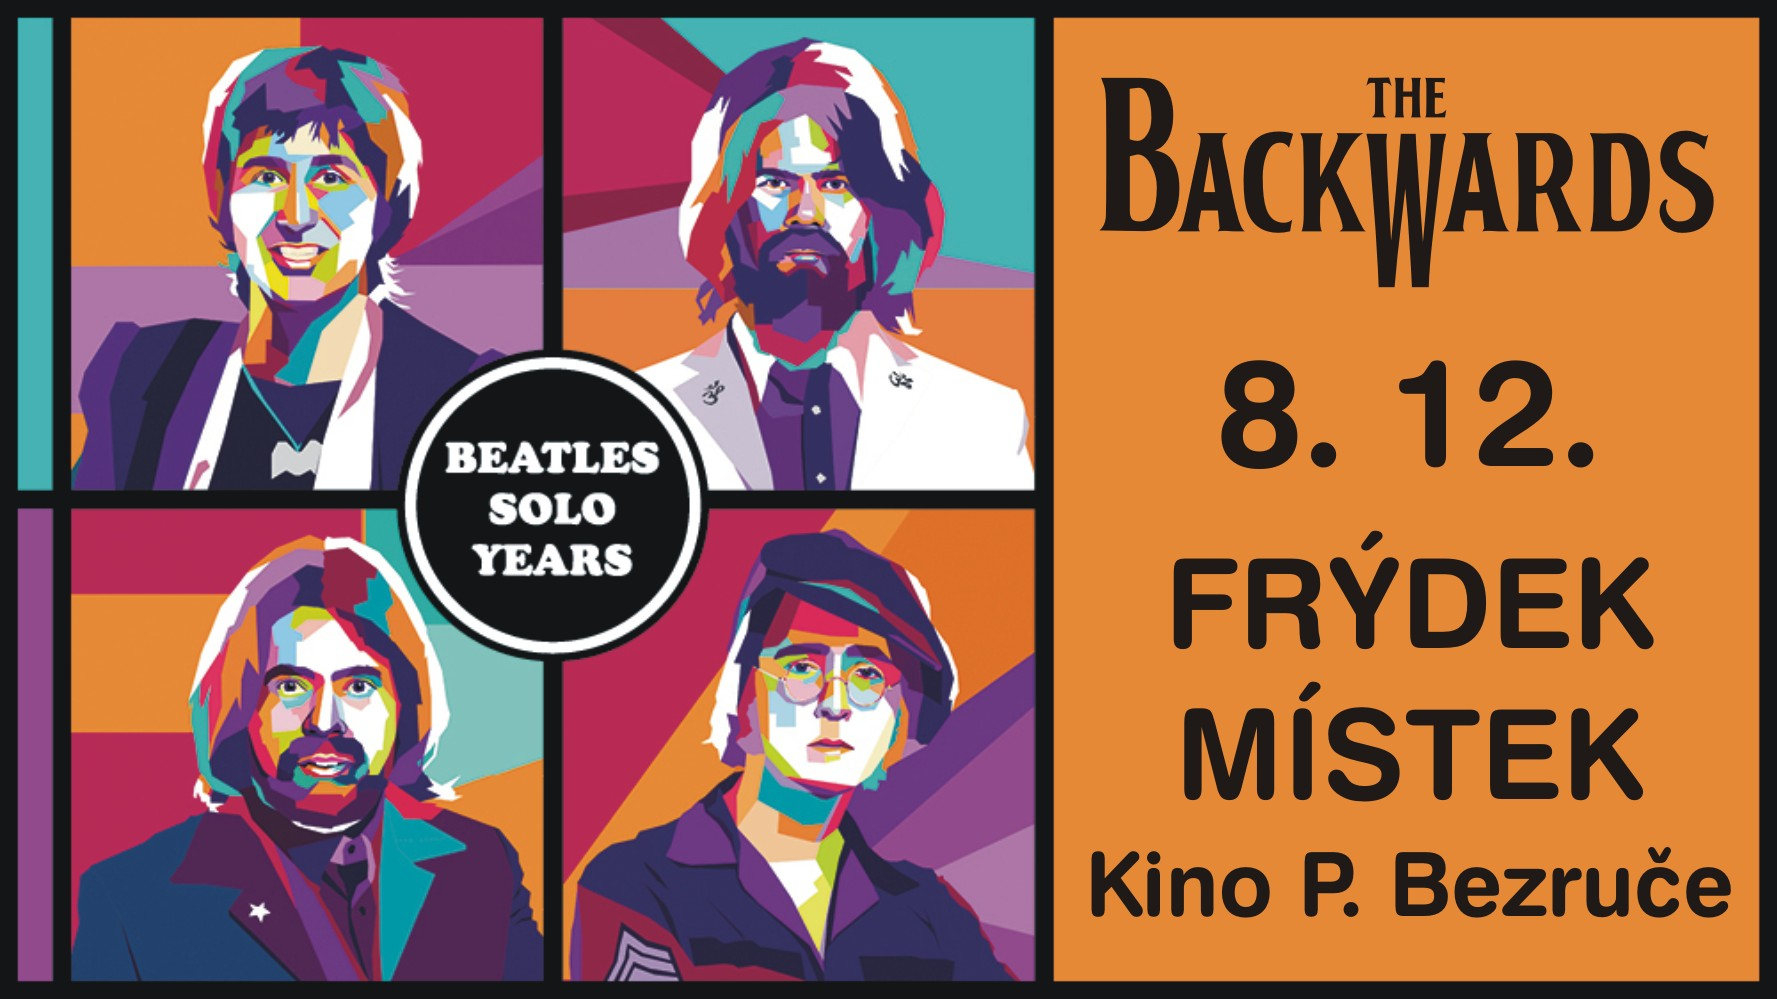 THE BACKWARDS | Beatles Solo Years